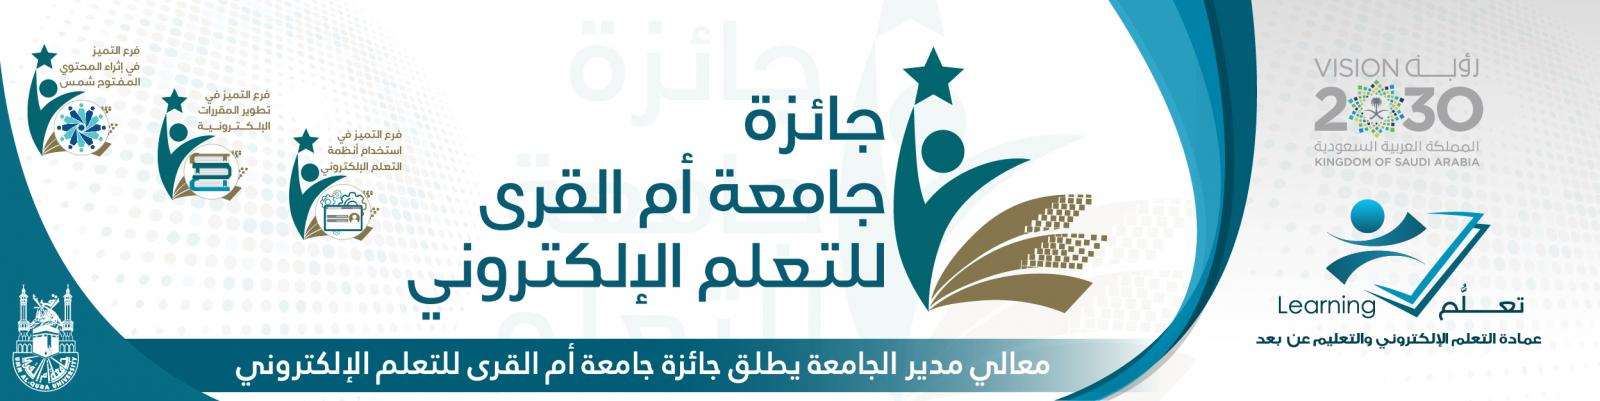 His Excellency the UQU President Launches the Umm Al-Qura University E-Learning Award